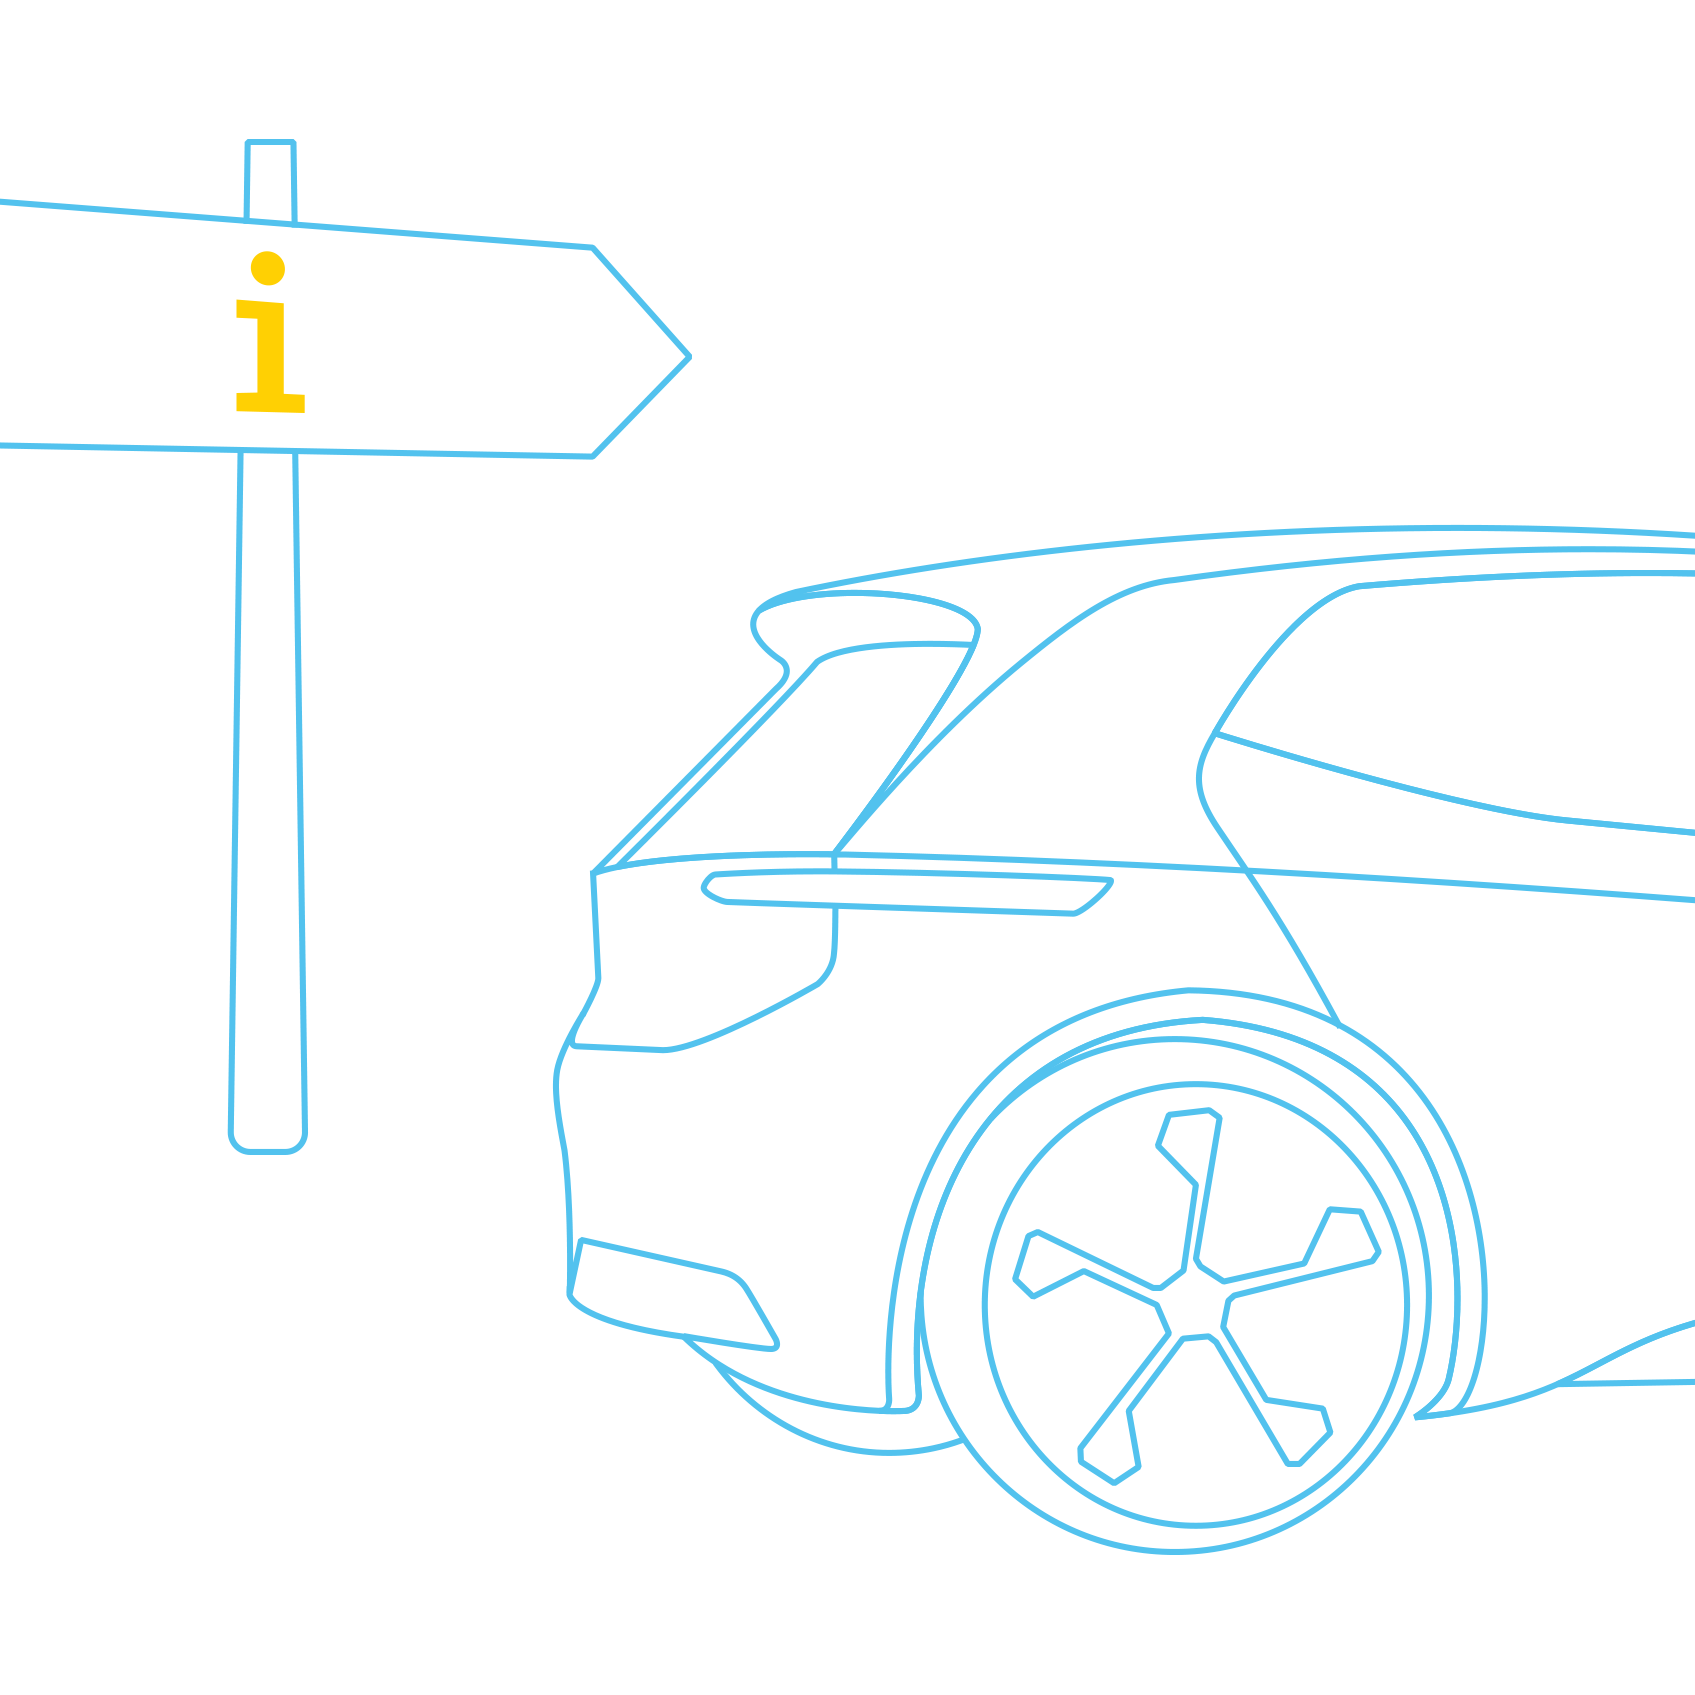 Electric vehicle with a guidepost